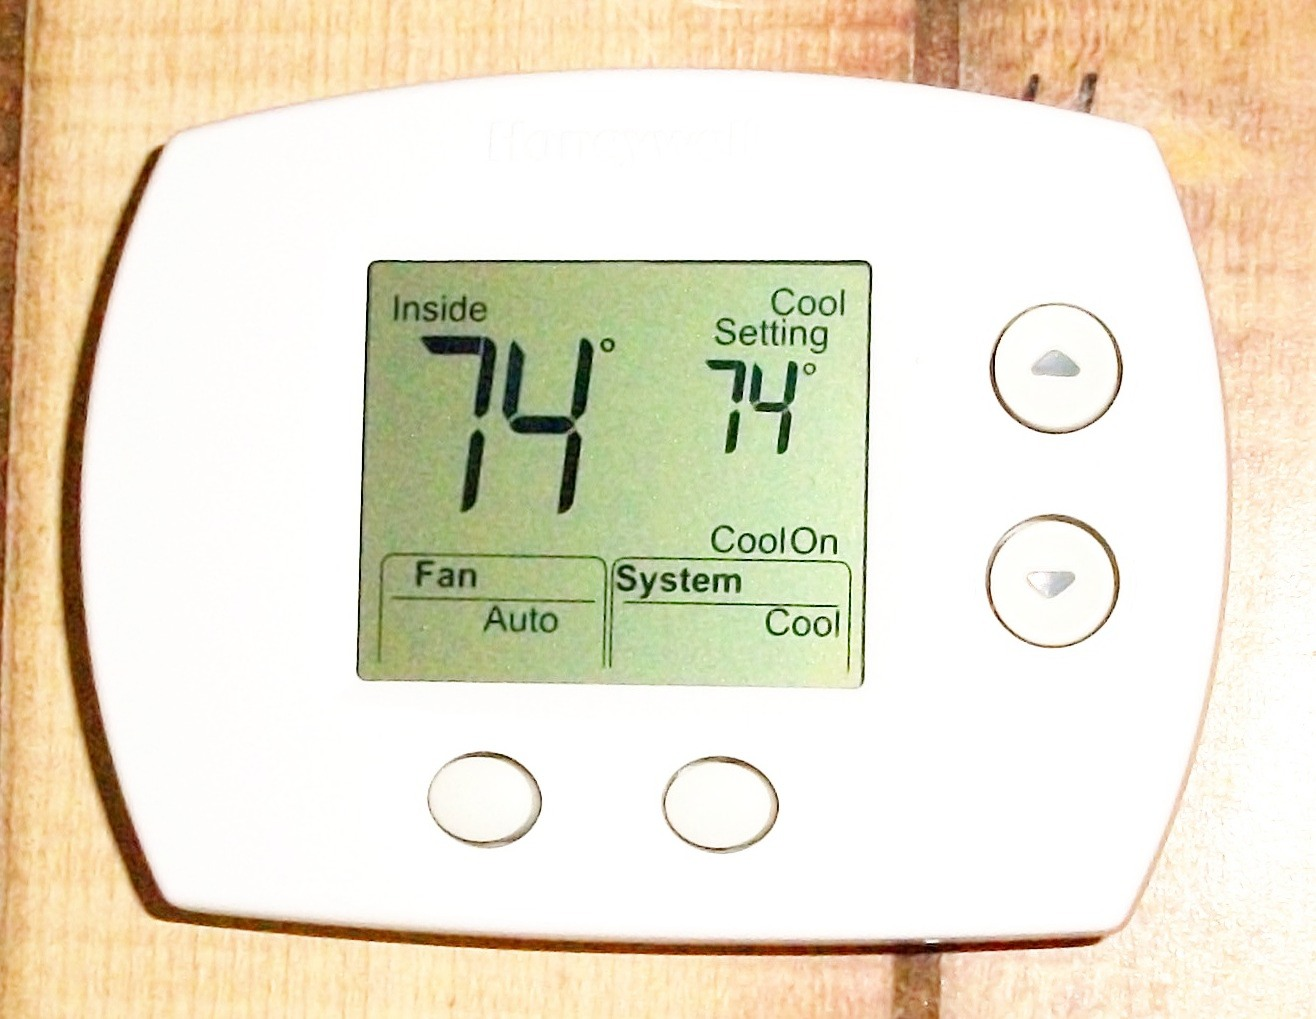 cabin talk: thermostat on the rise